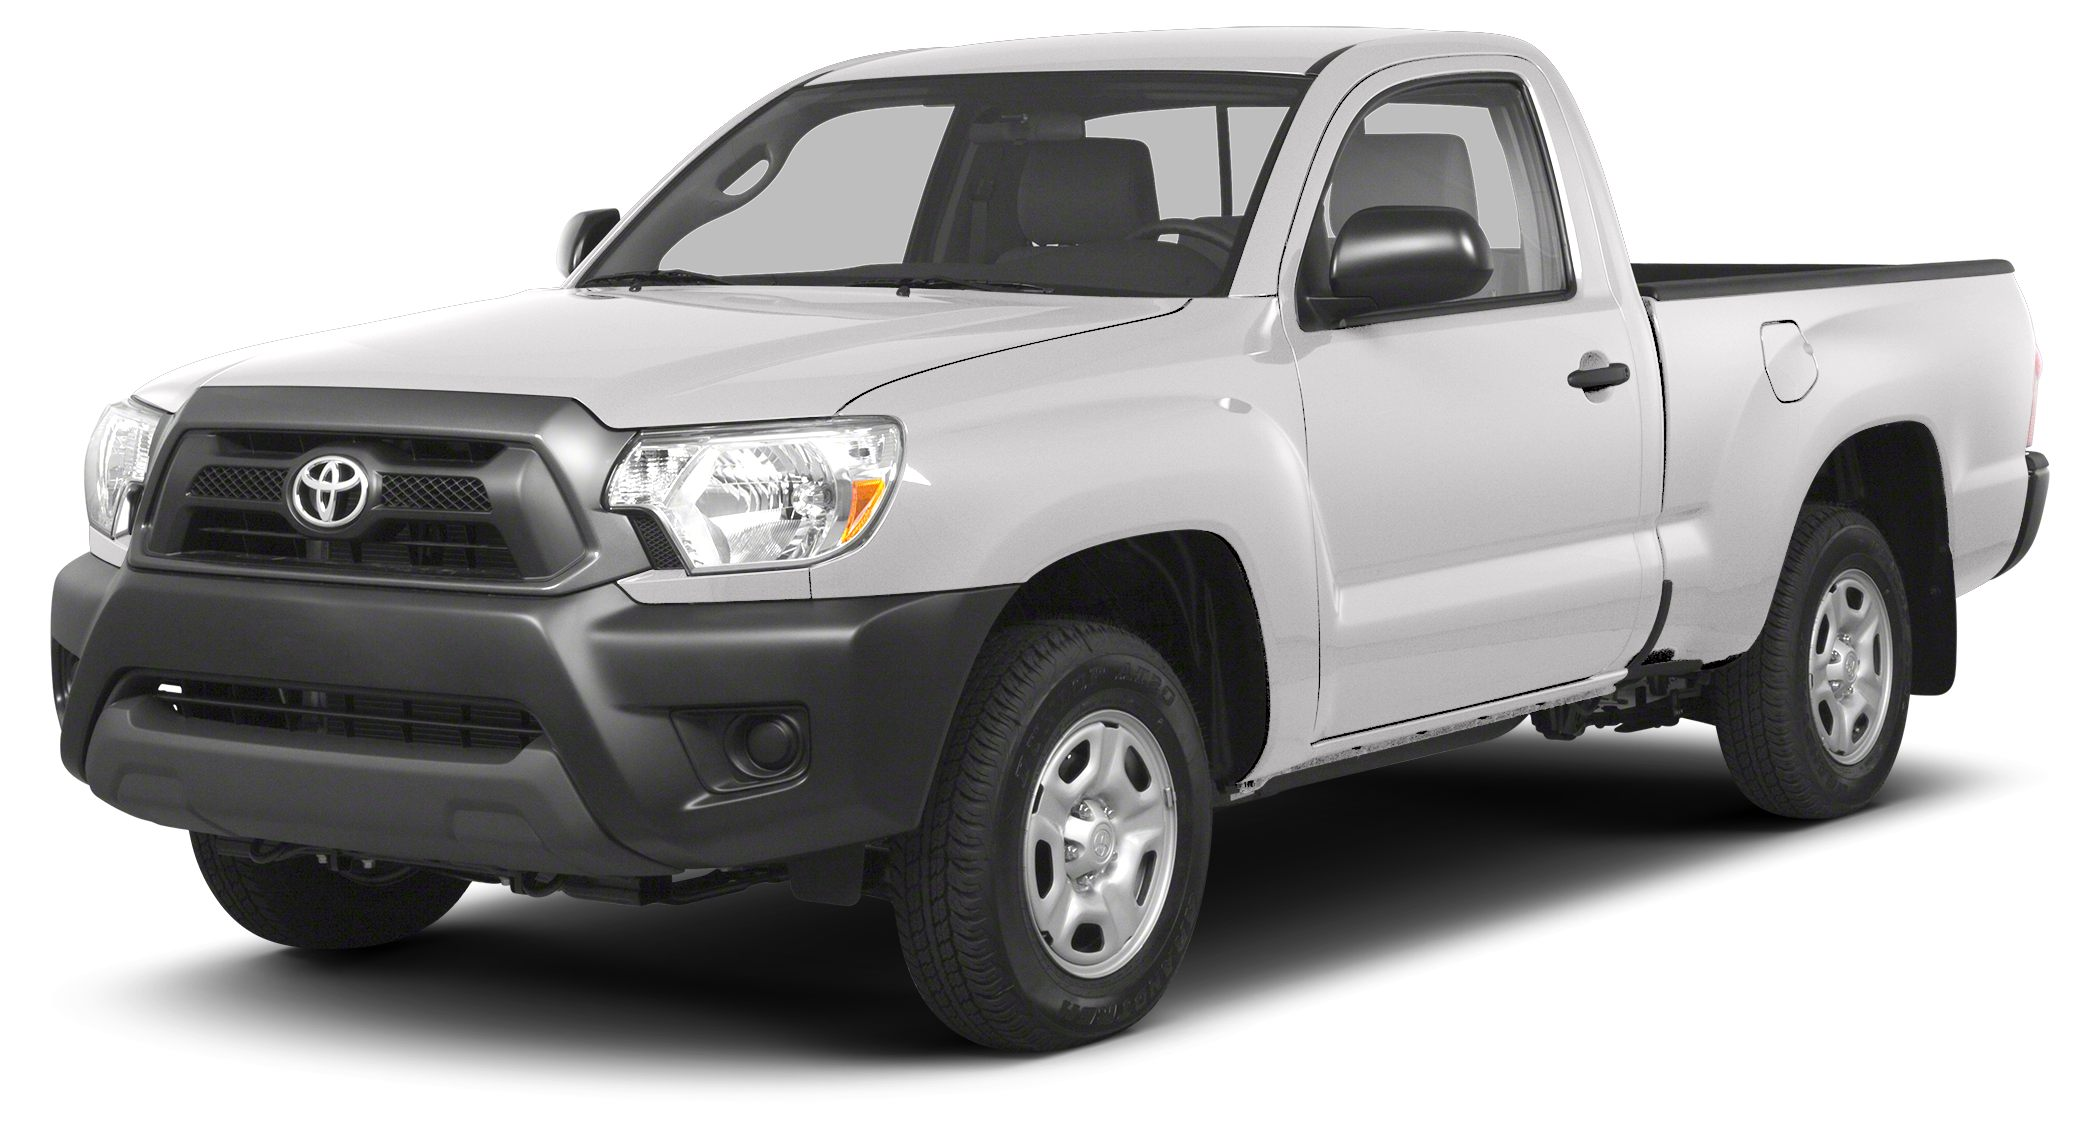 2012 Toyota Tacoma Base CARFAX 1-Owner GREAT MILES 52825 EPA 20 MPG Hwy18 MPG City Tacoma tri